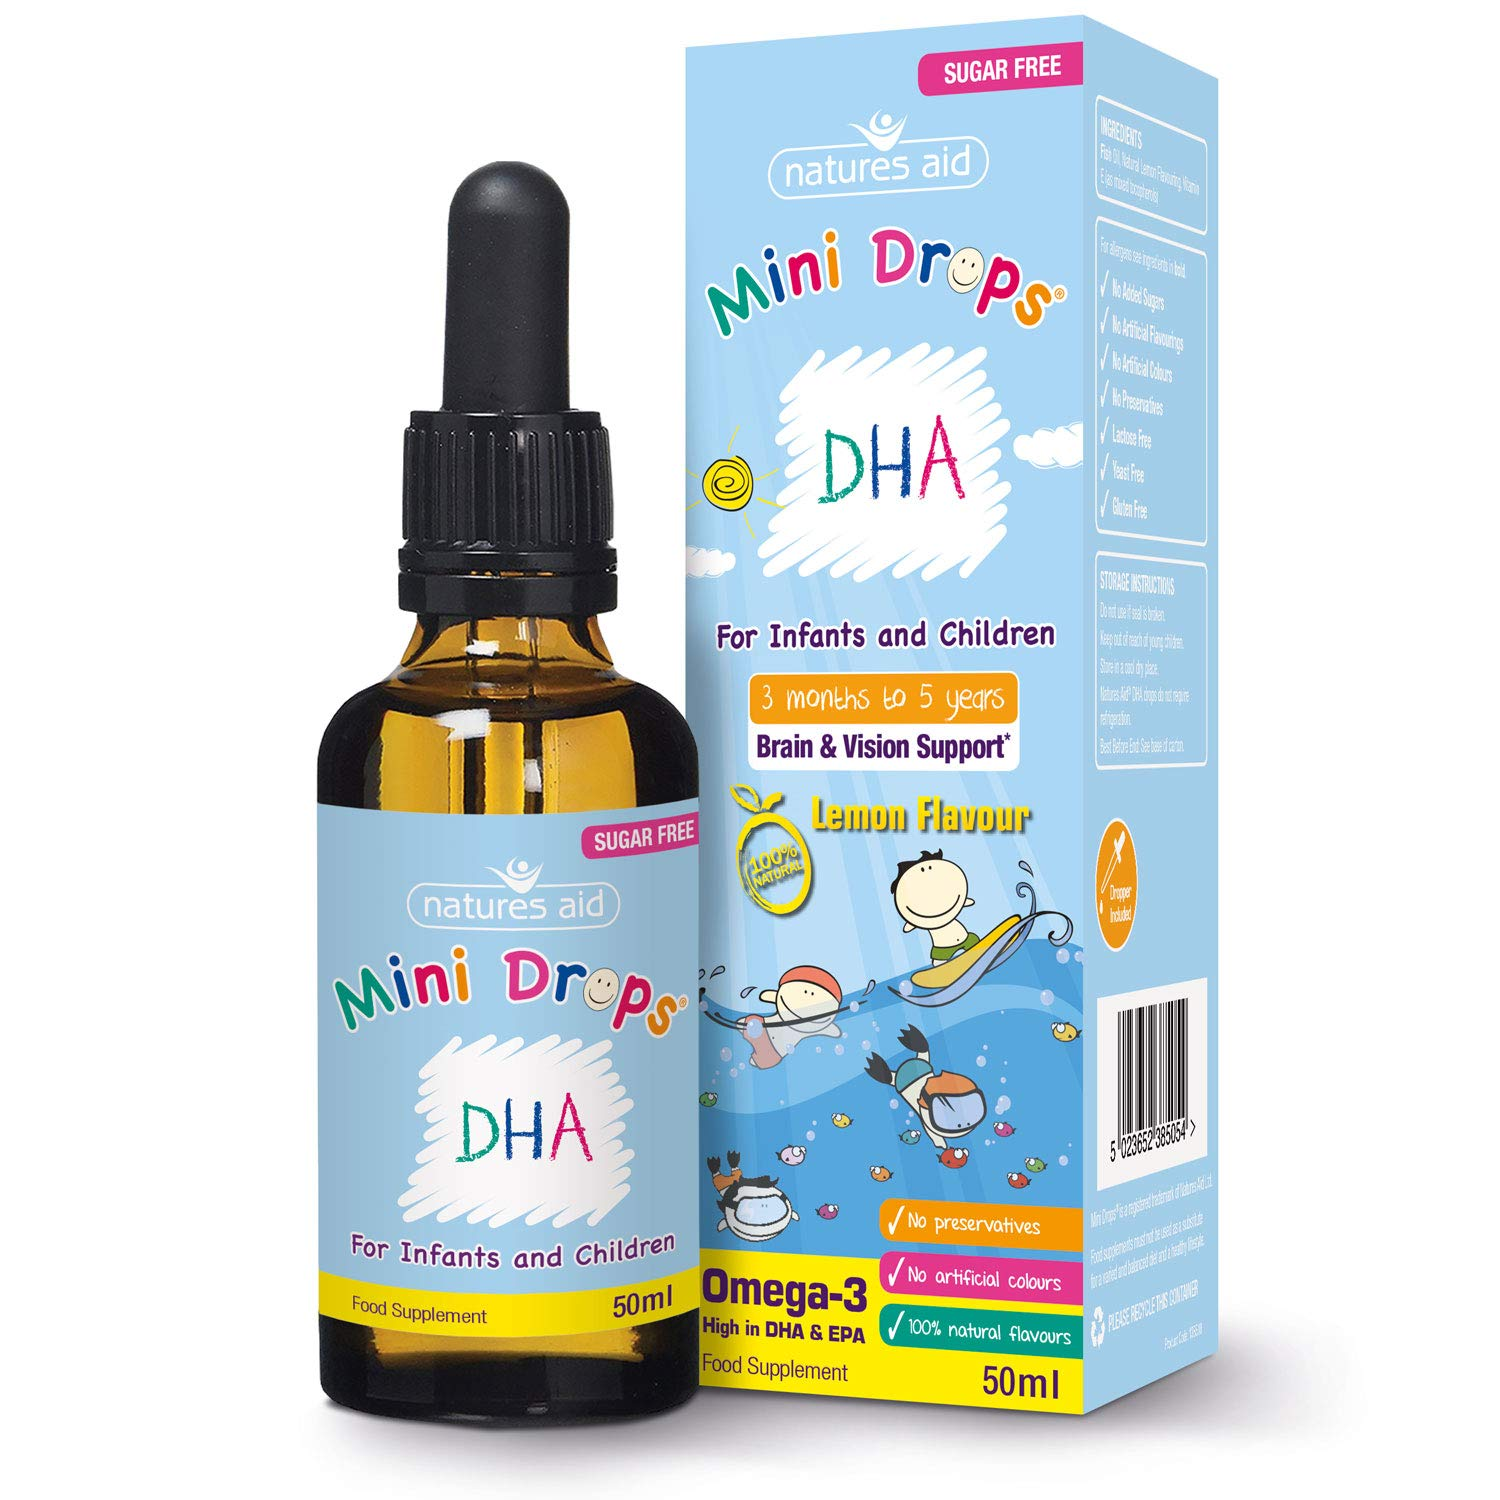 Natures Aid DHA Omega-3 Mini Drops for Infants and Children, Sugar Free, 50 ml